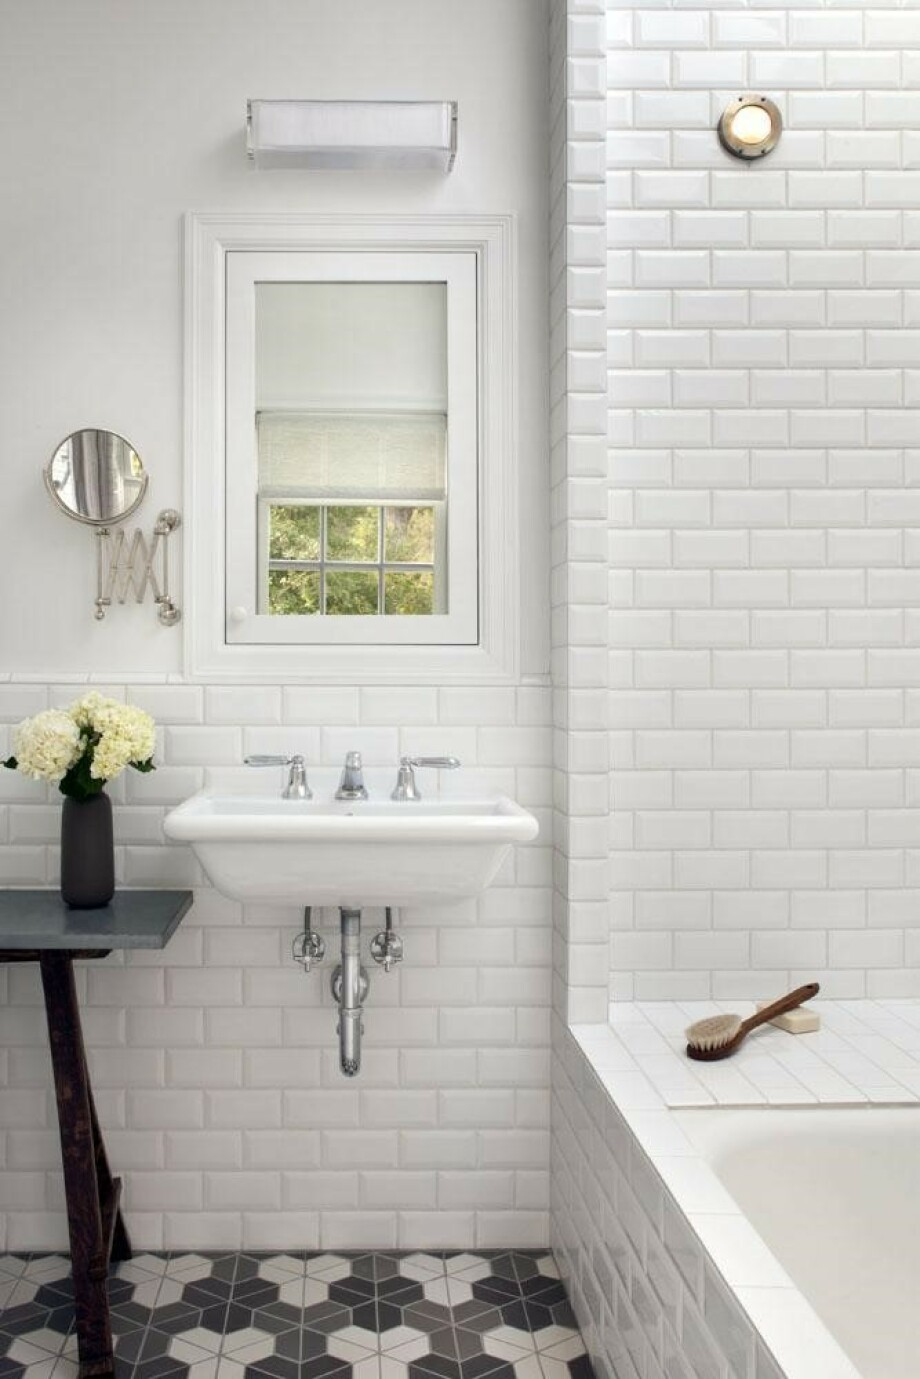 Reinvigorating Old Bathroom Tiles